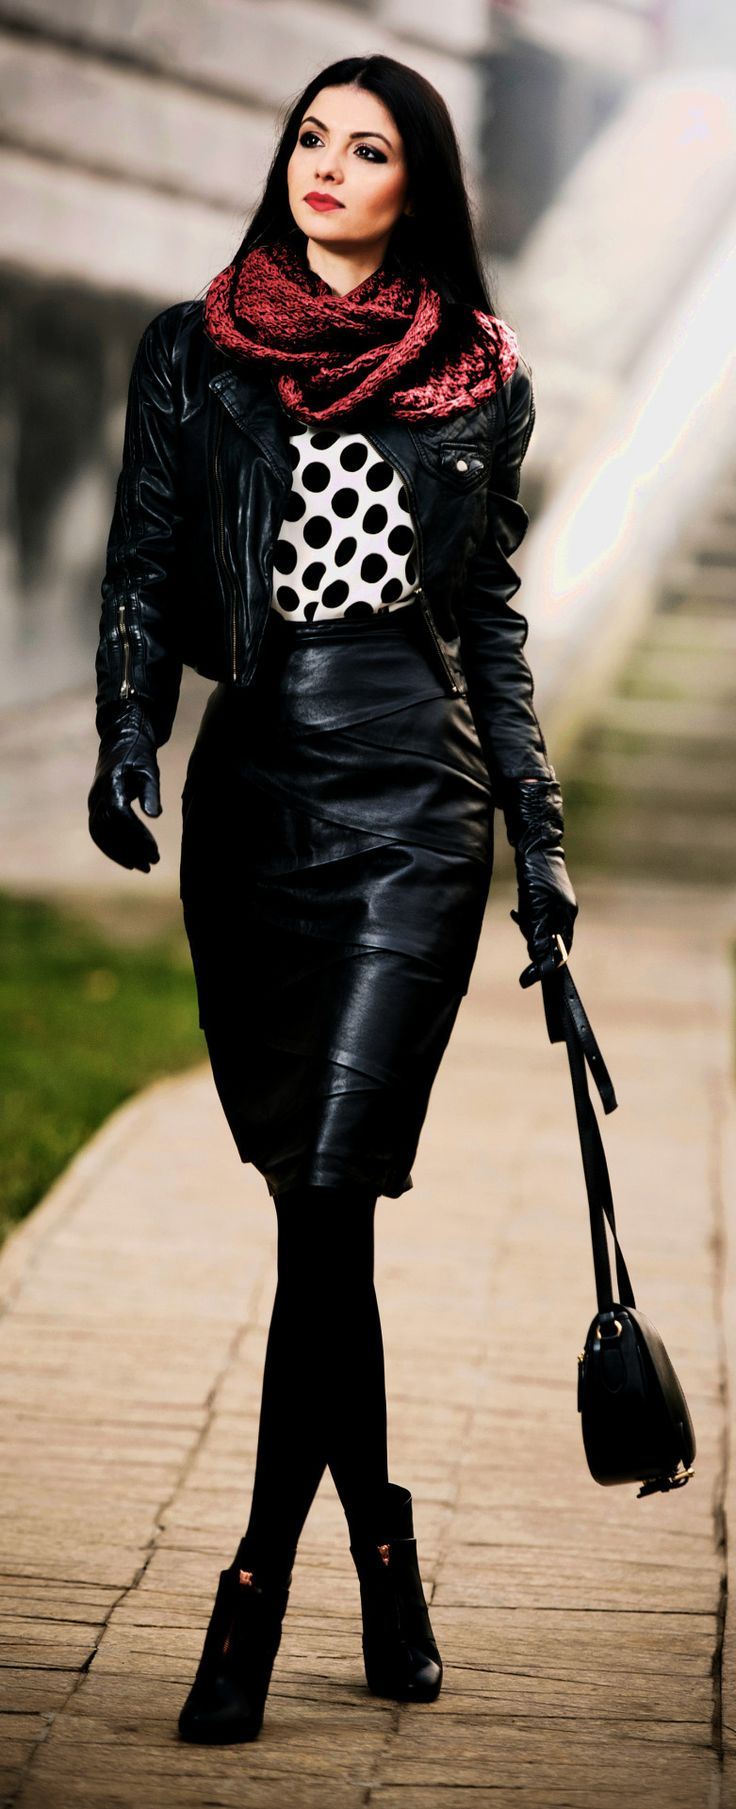 Supple black leather outfit: jacket, gloves, pencil skirt, opaque leggings and ankle boots.